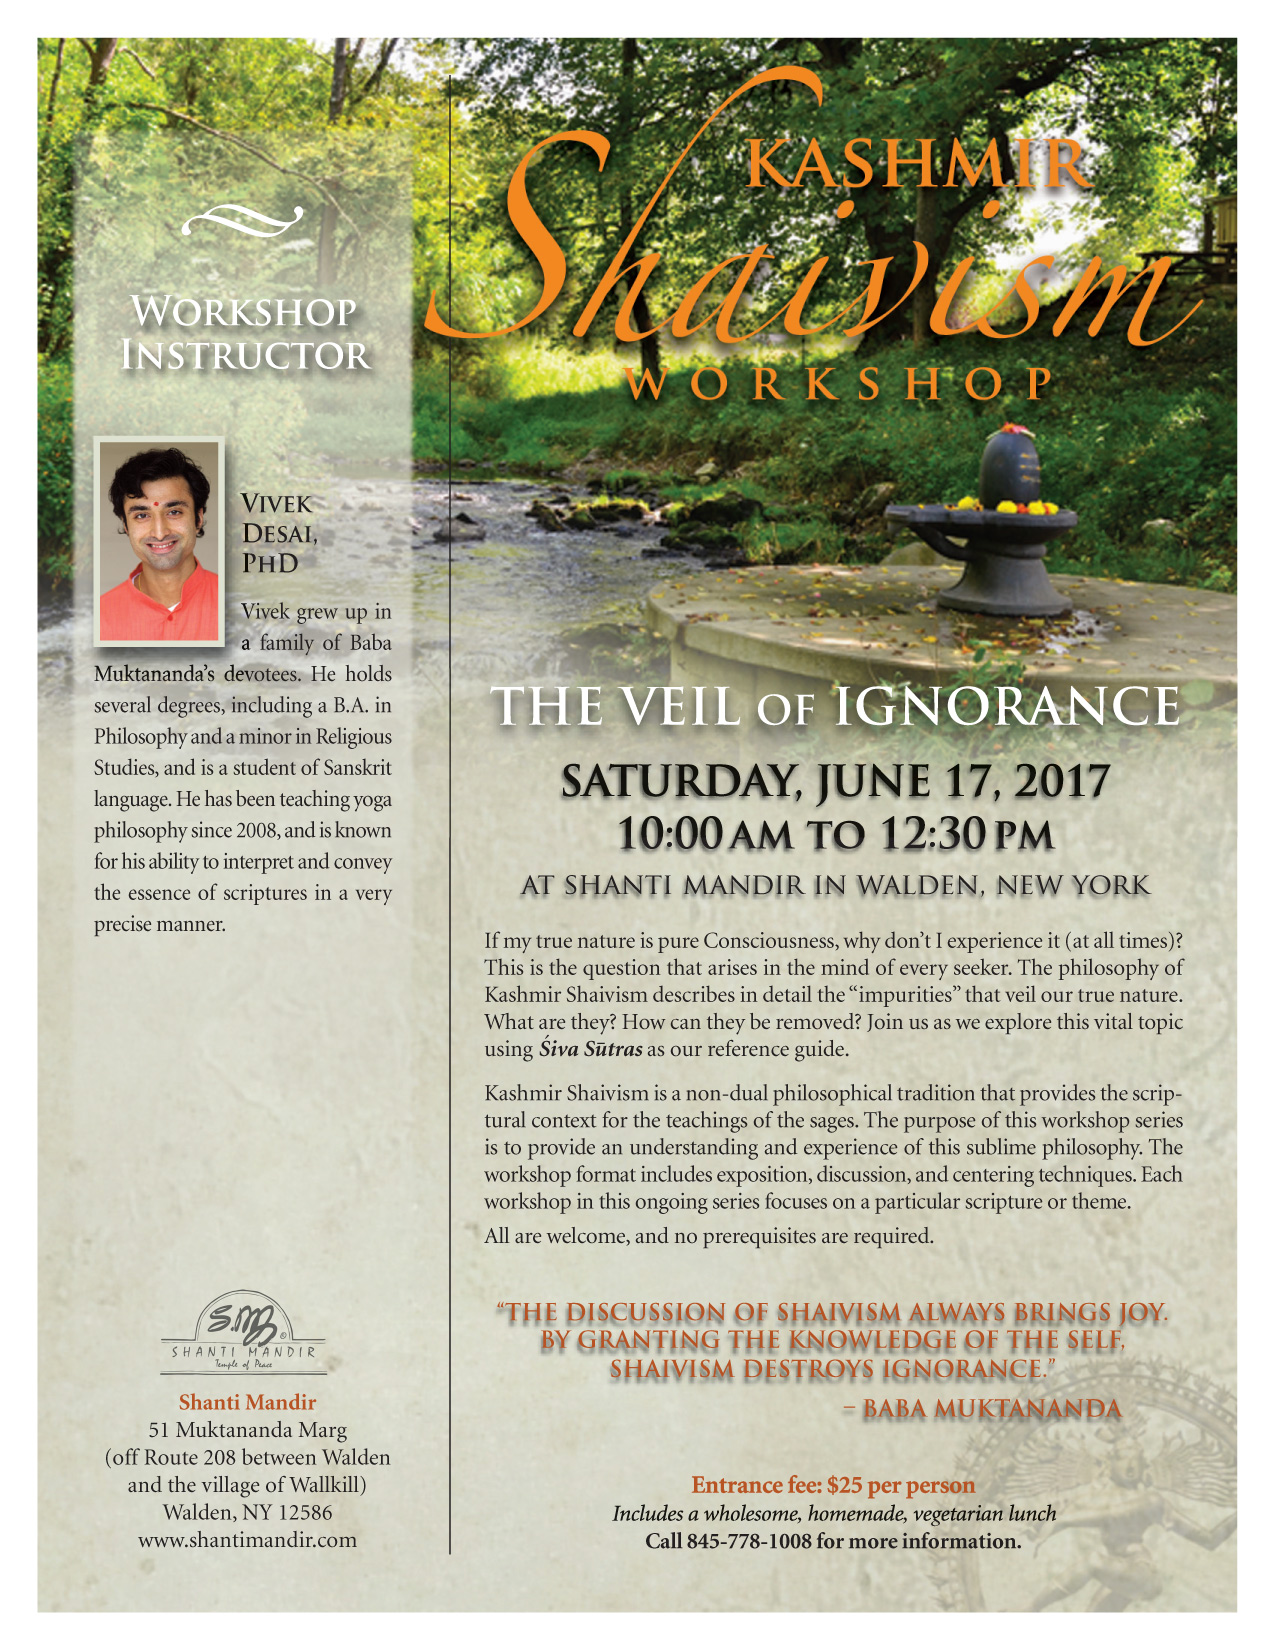 Kashmir Shaivism Workshop Flyer-June 2017